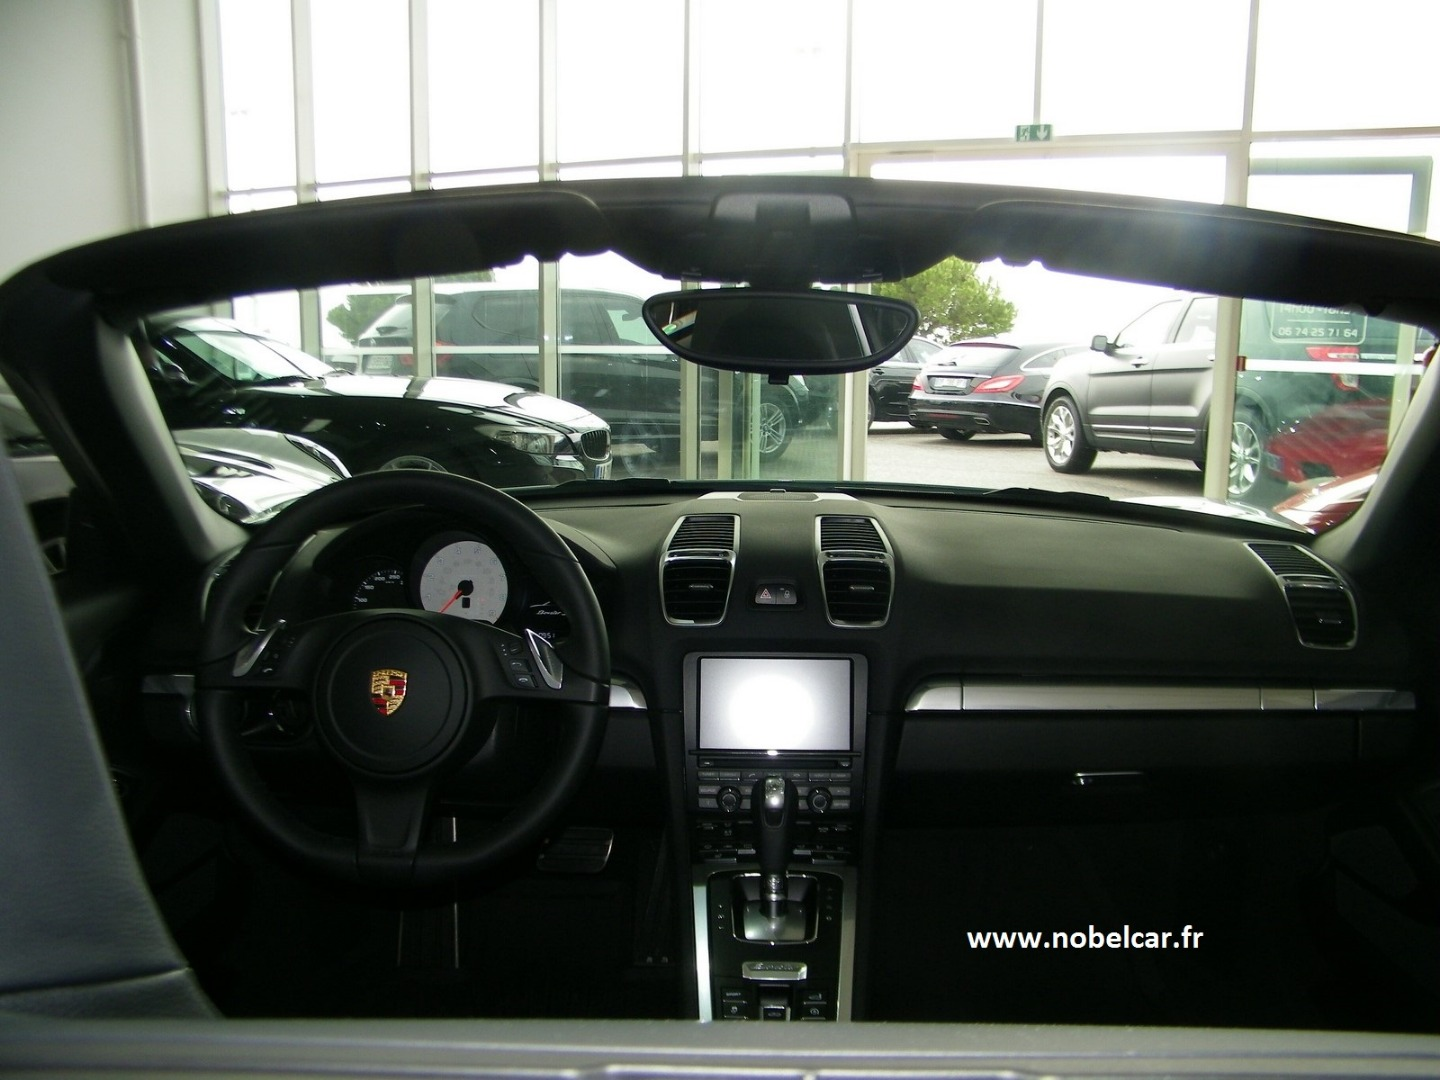 Porsche Boxster S 3.4 315 CH PDK Type 981 D'occasion Gironde 33